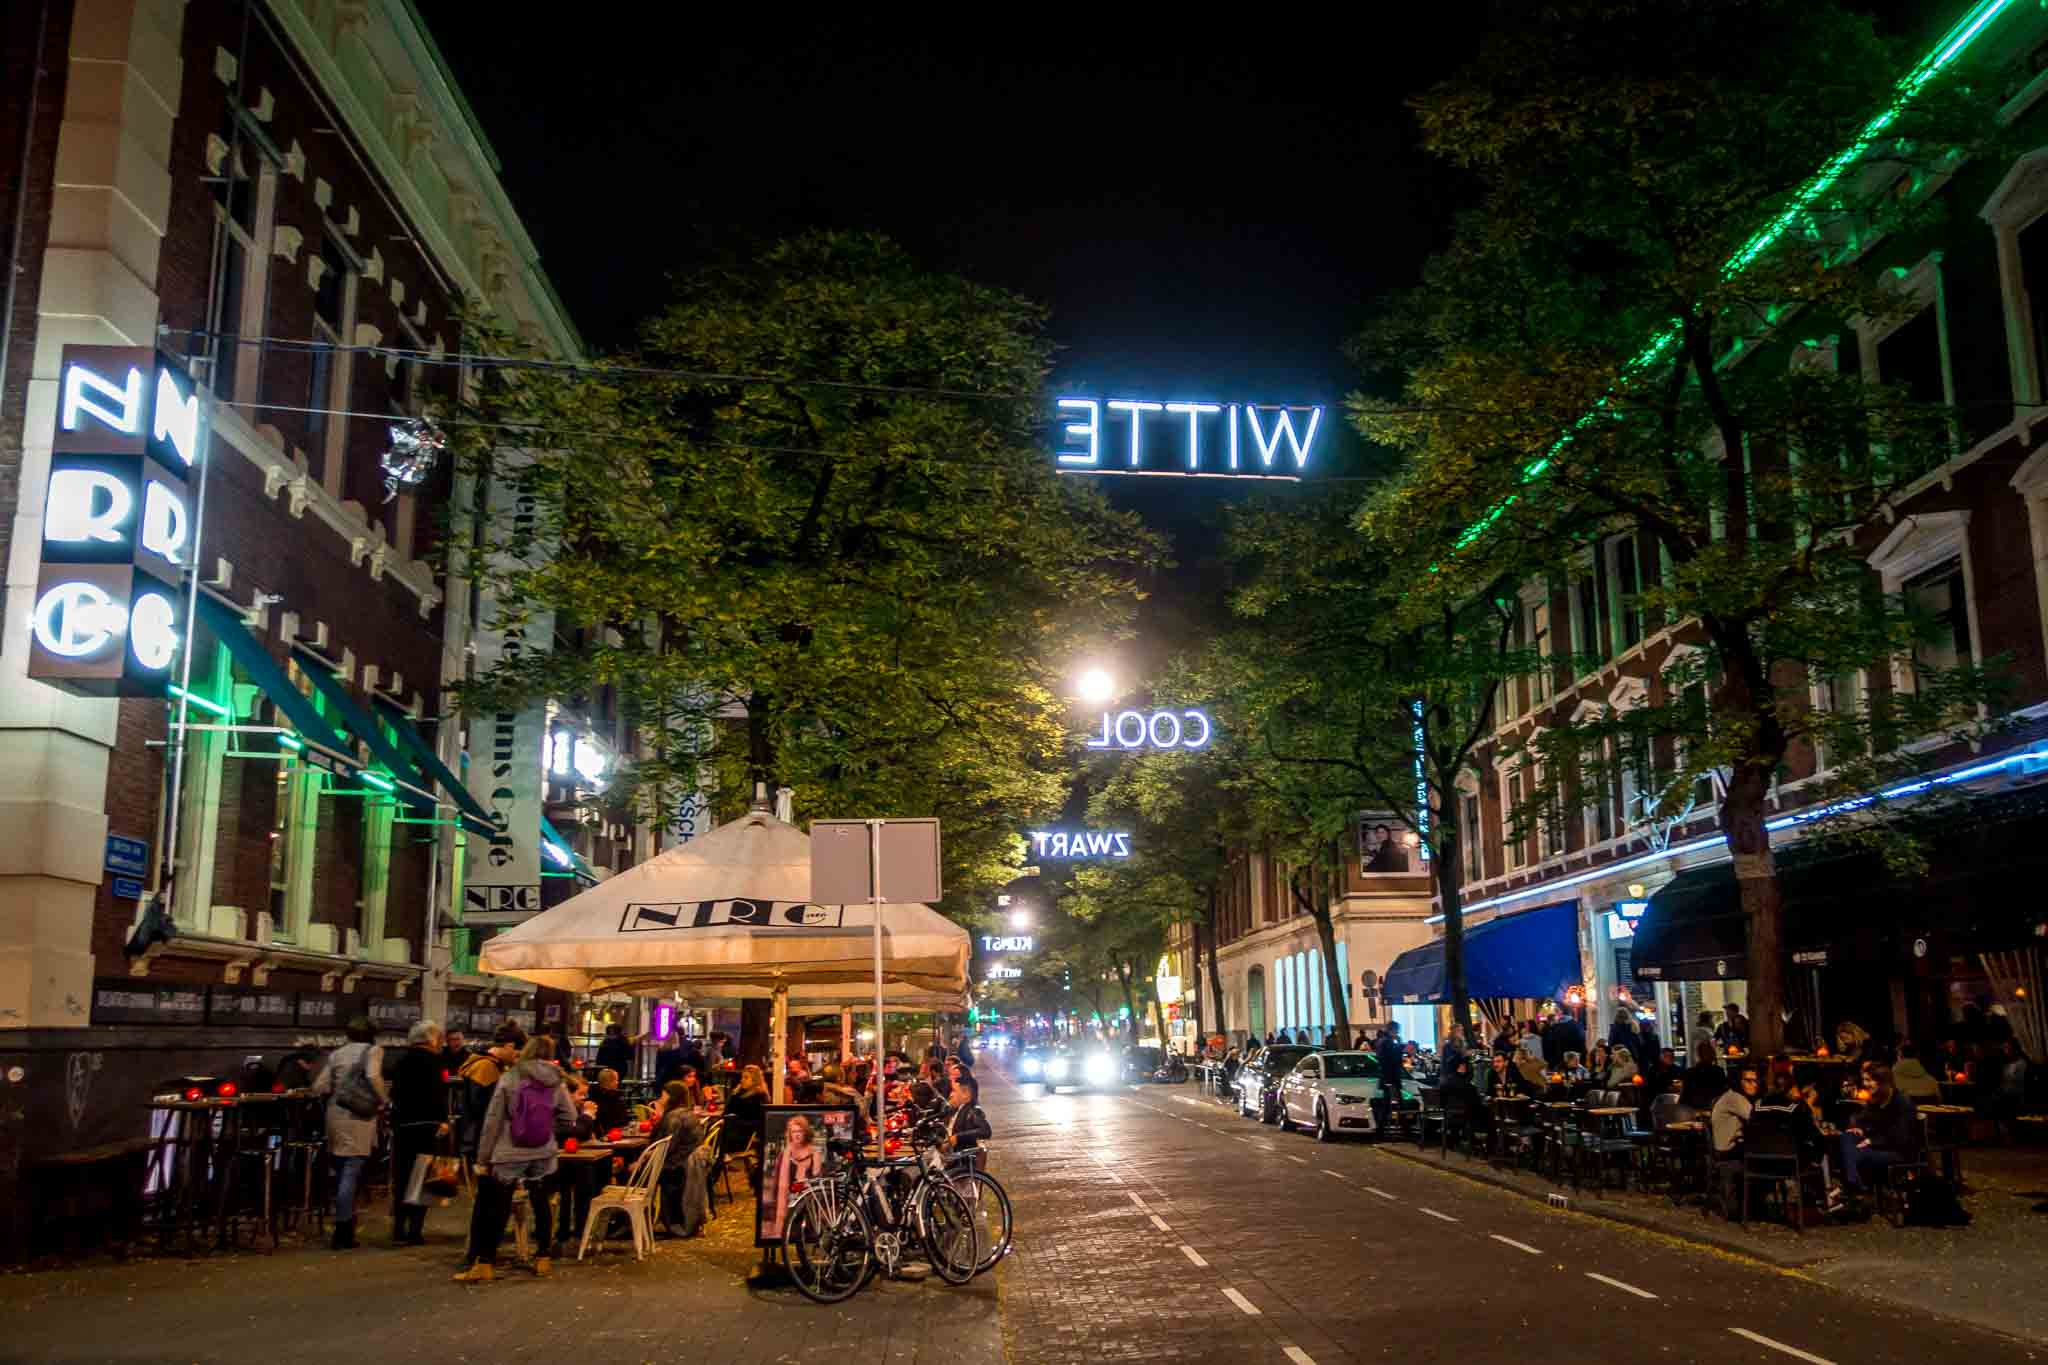 Rotterdam's colorful Witte de With Street is full of activity at night